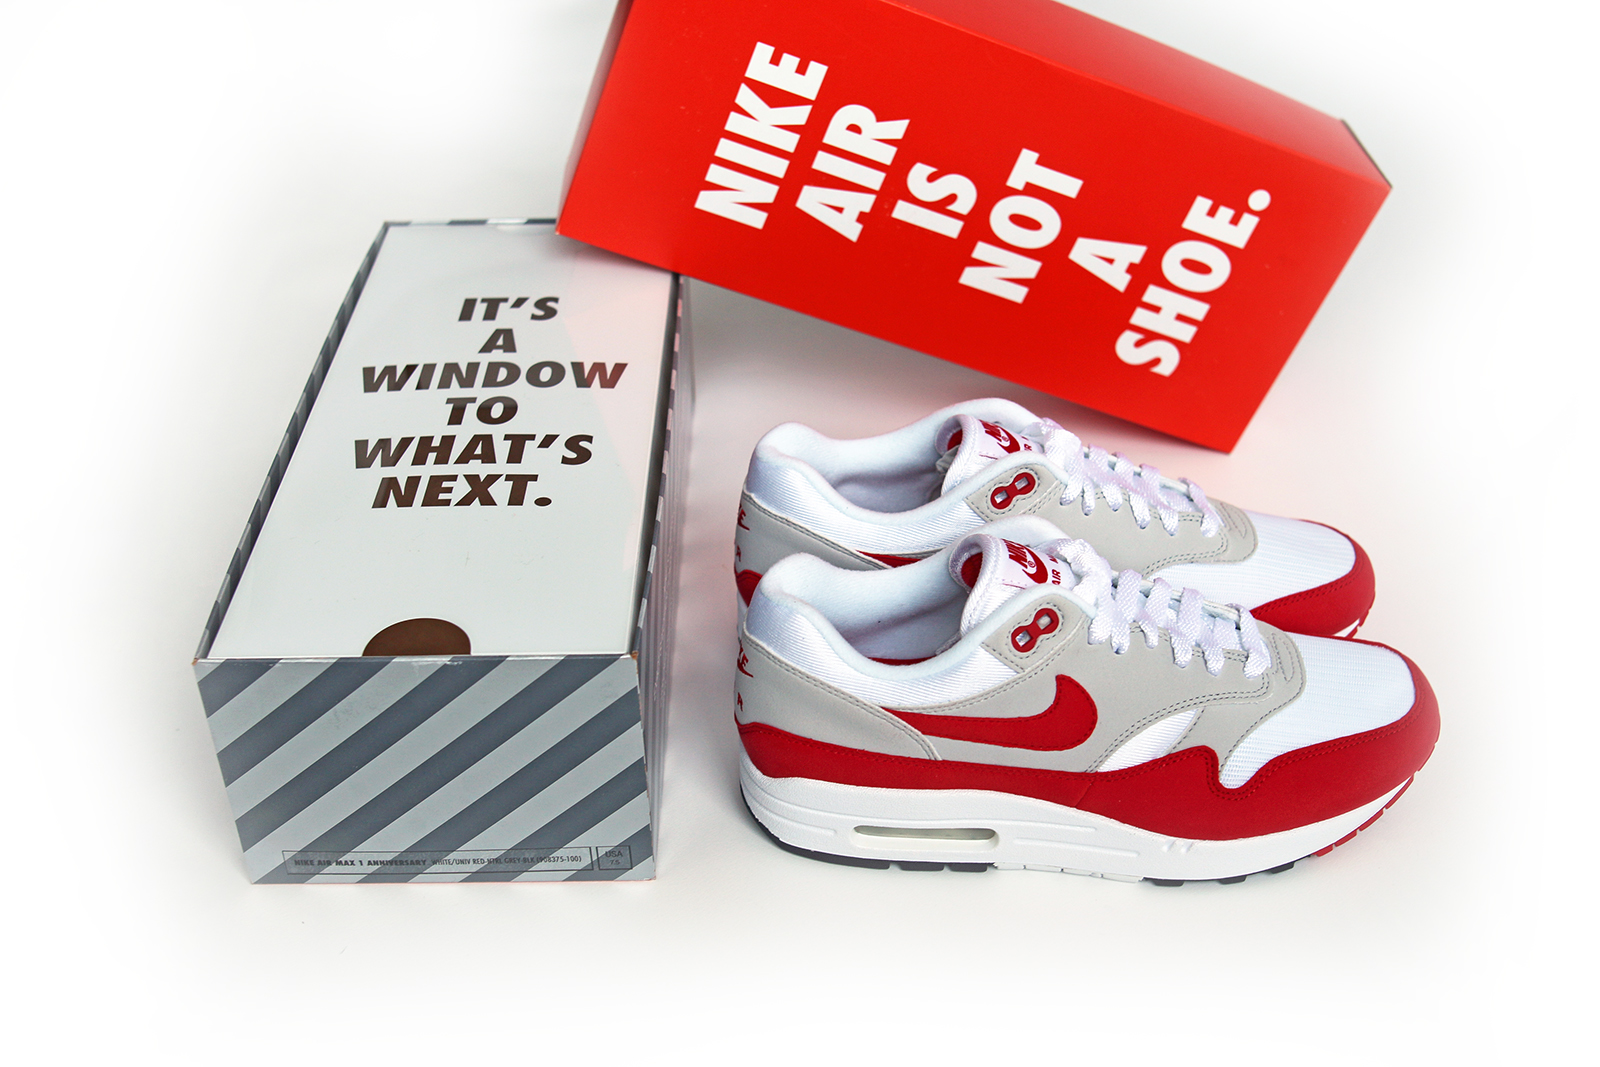 ... wholesale peep the nike air max 1 og sport red in all its glory below. c52211a59